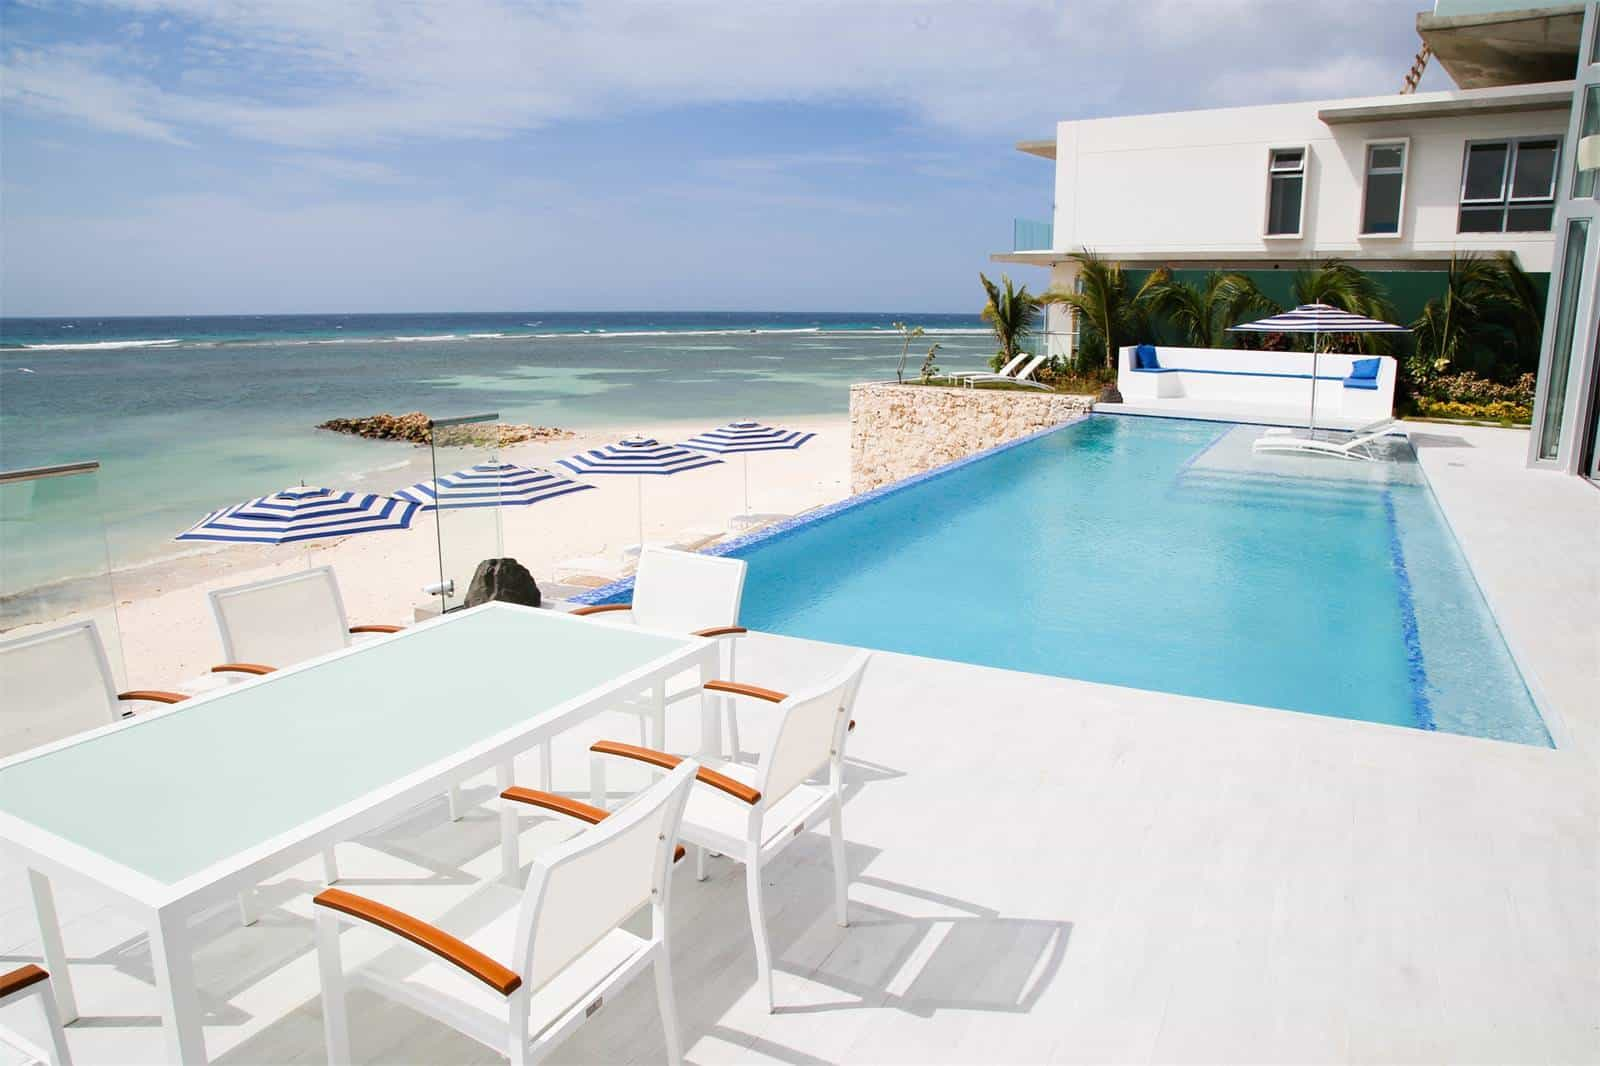 Aruba Beachfront Estate poolside